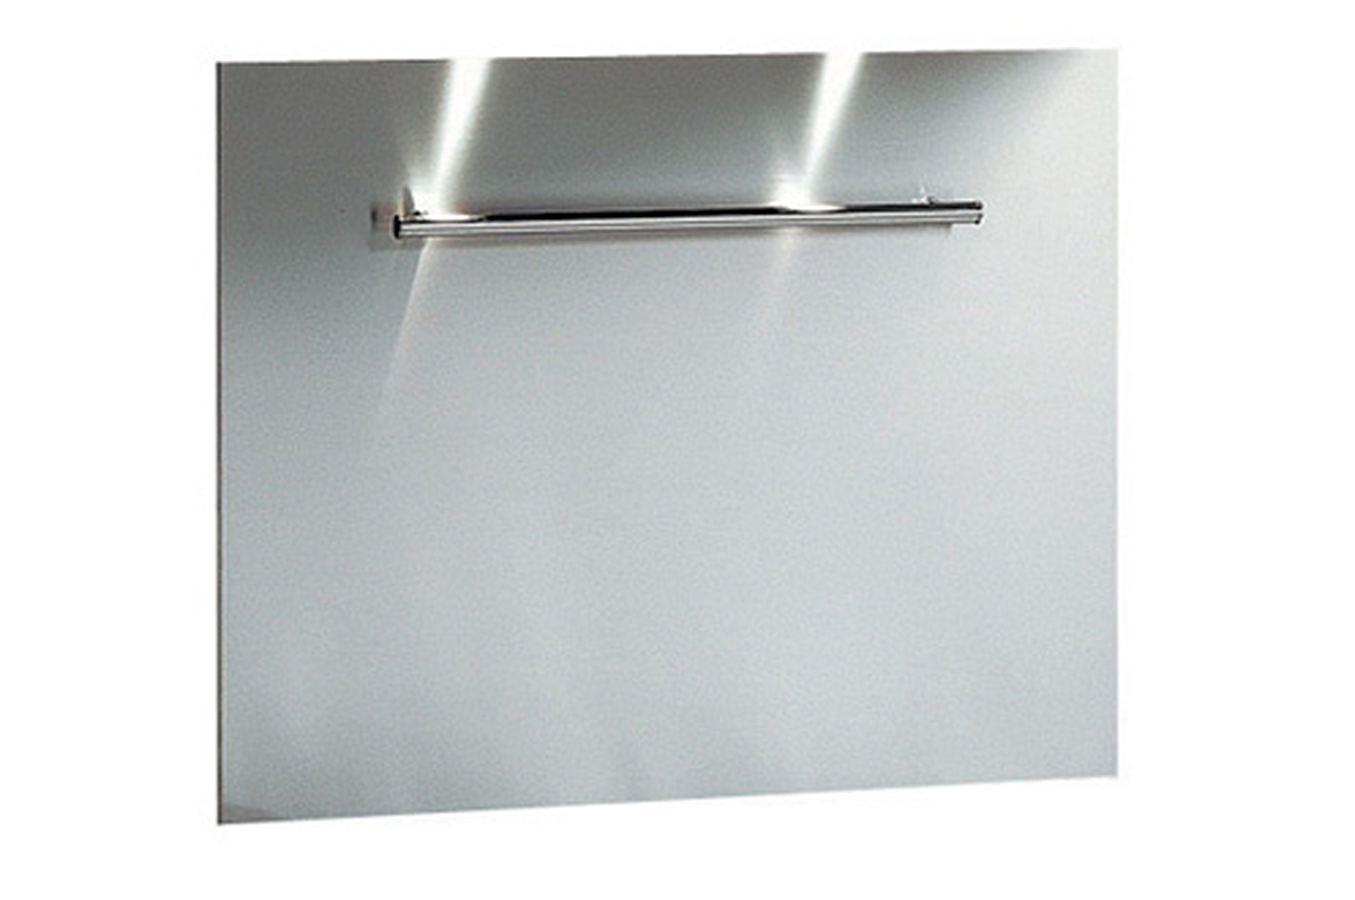 Cr dence la germania 901051x inox 3557871 darty for Credence inox plaque de cuisson